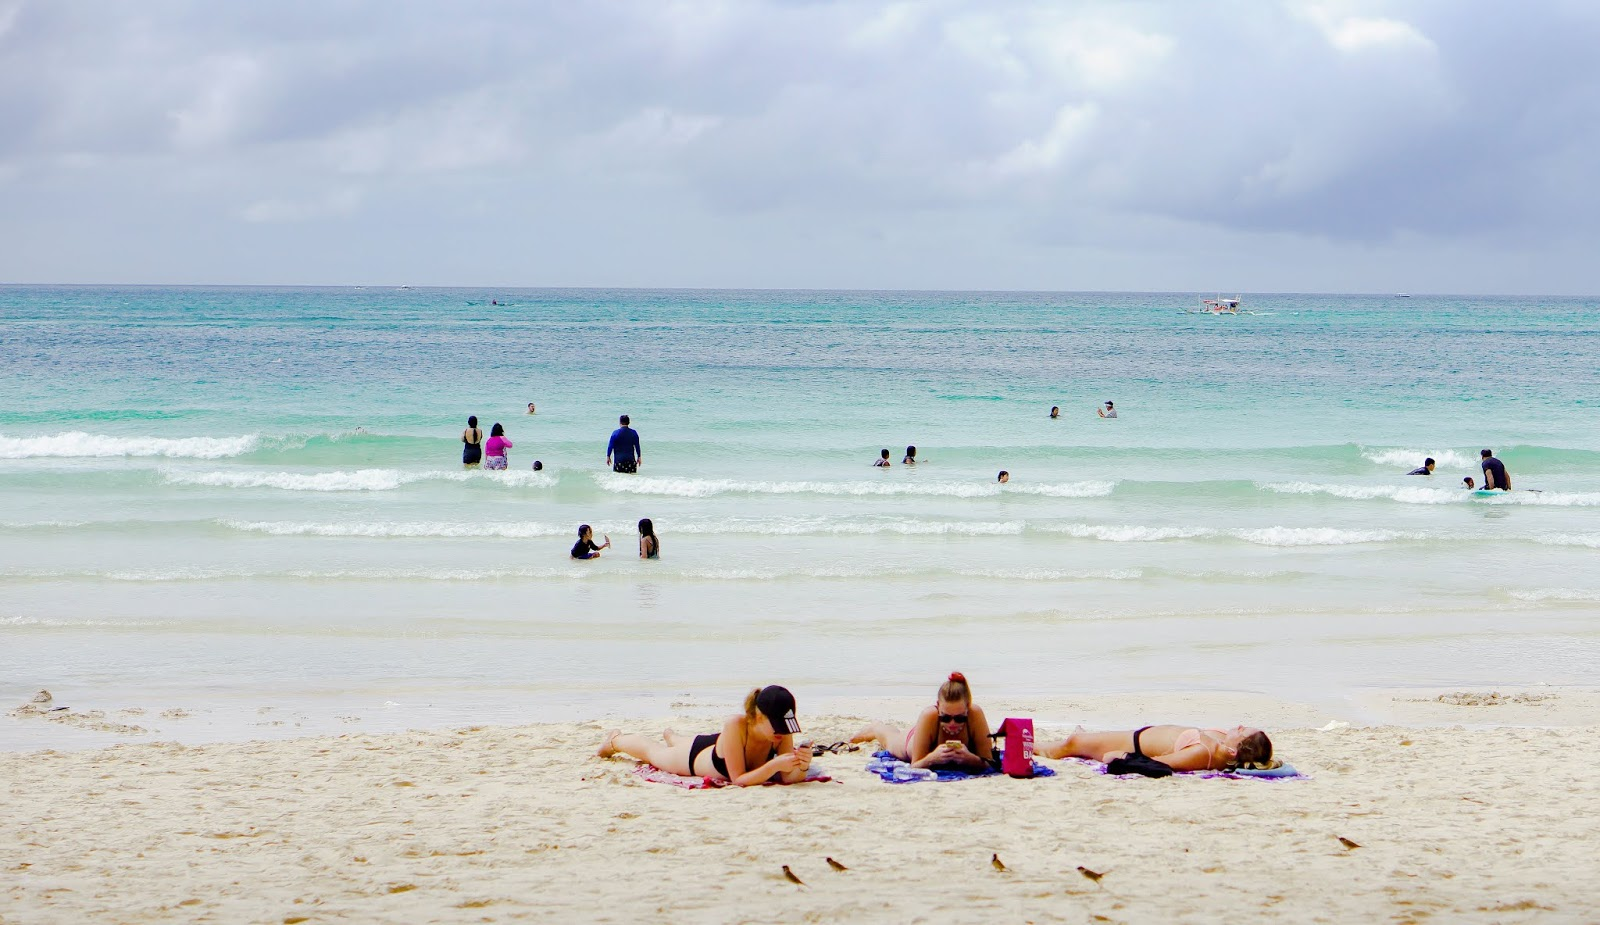 Visayas, weekend getaway, Boracay Island, what to do in Boracay, weekend in Boracay Island